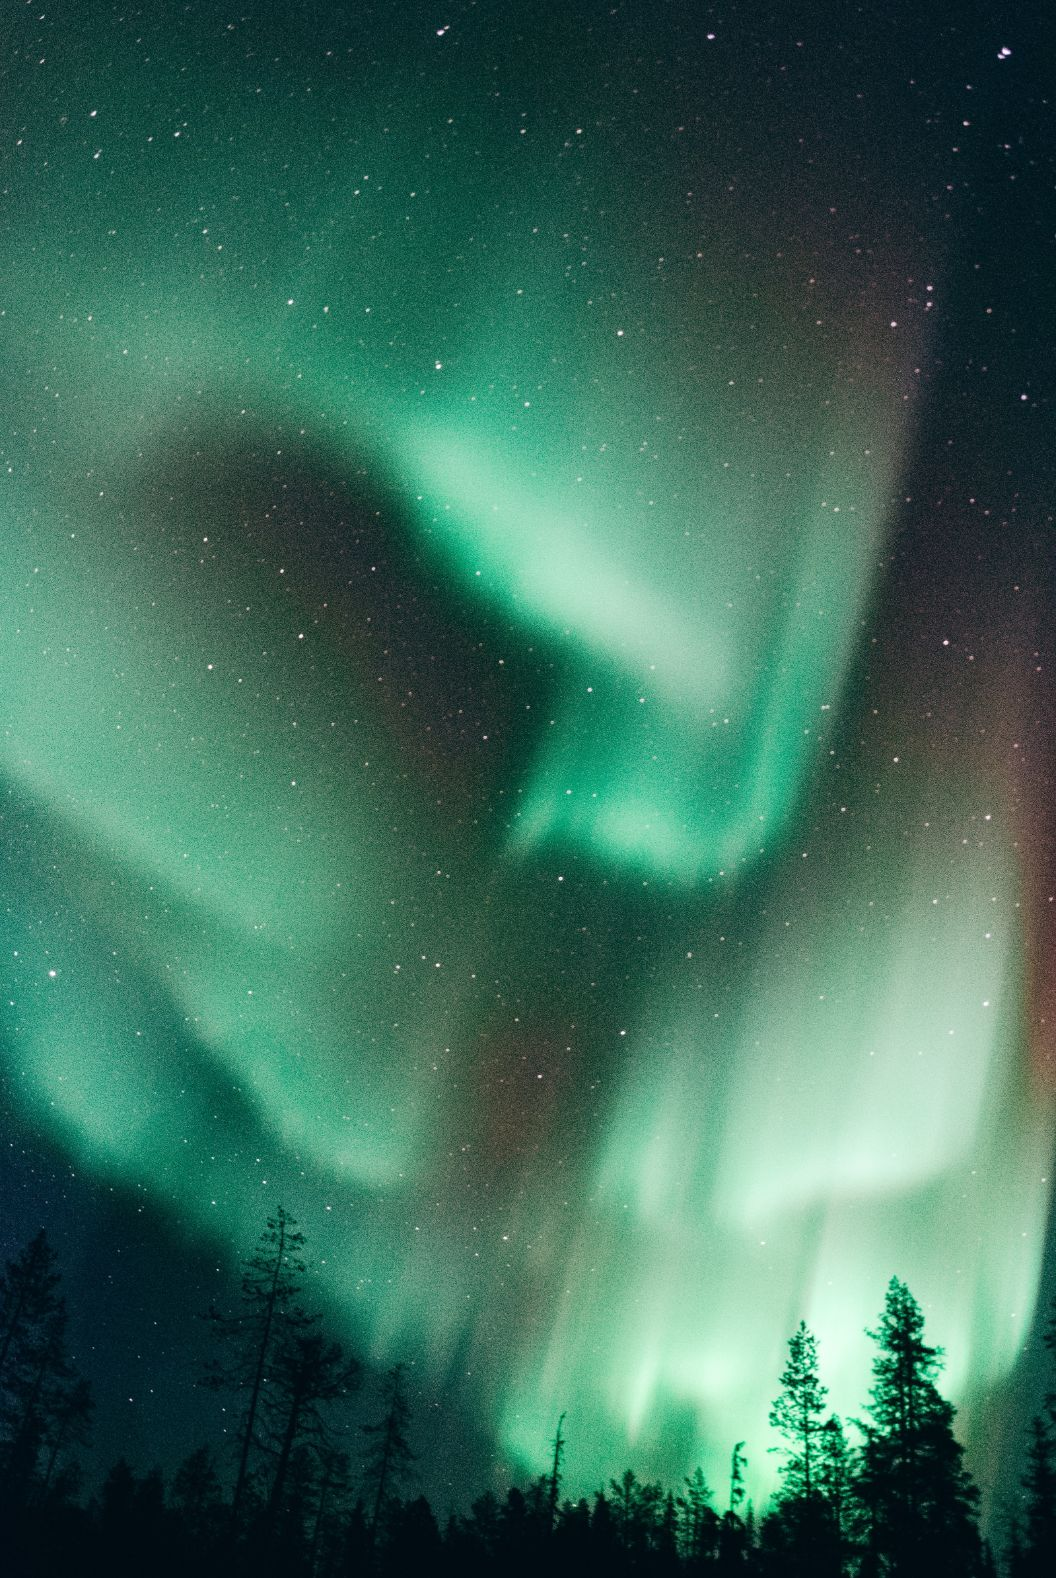 northern lights shining in the starry night sky above dark pine trees in Finnish Lapland